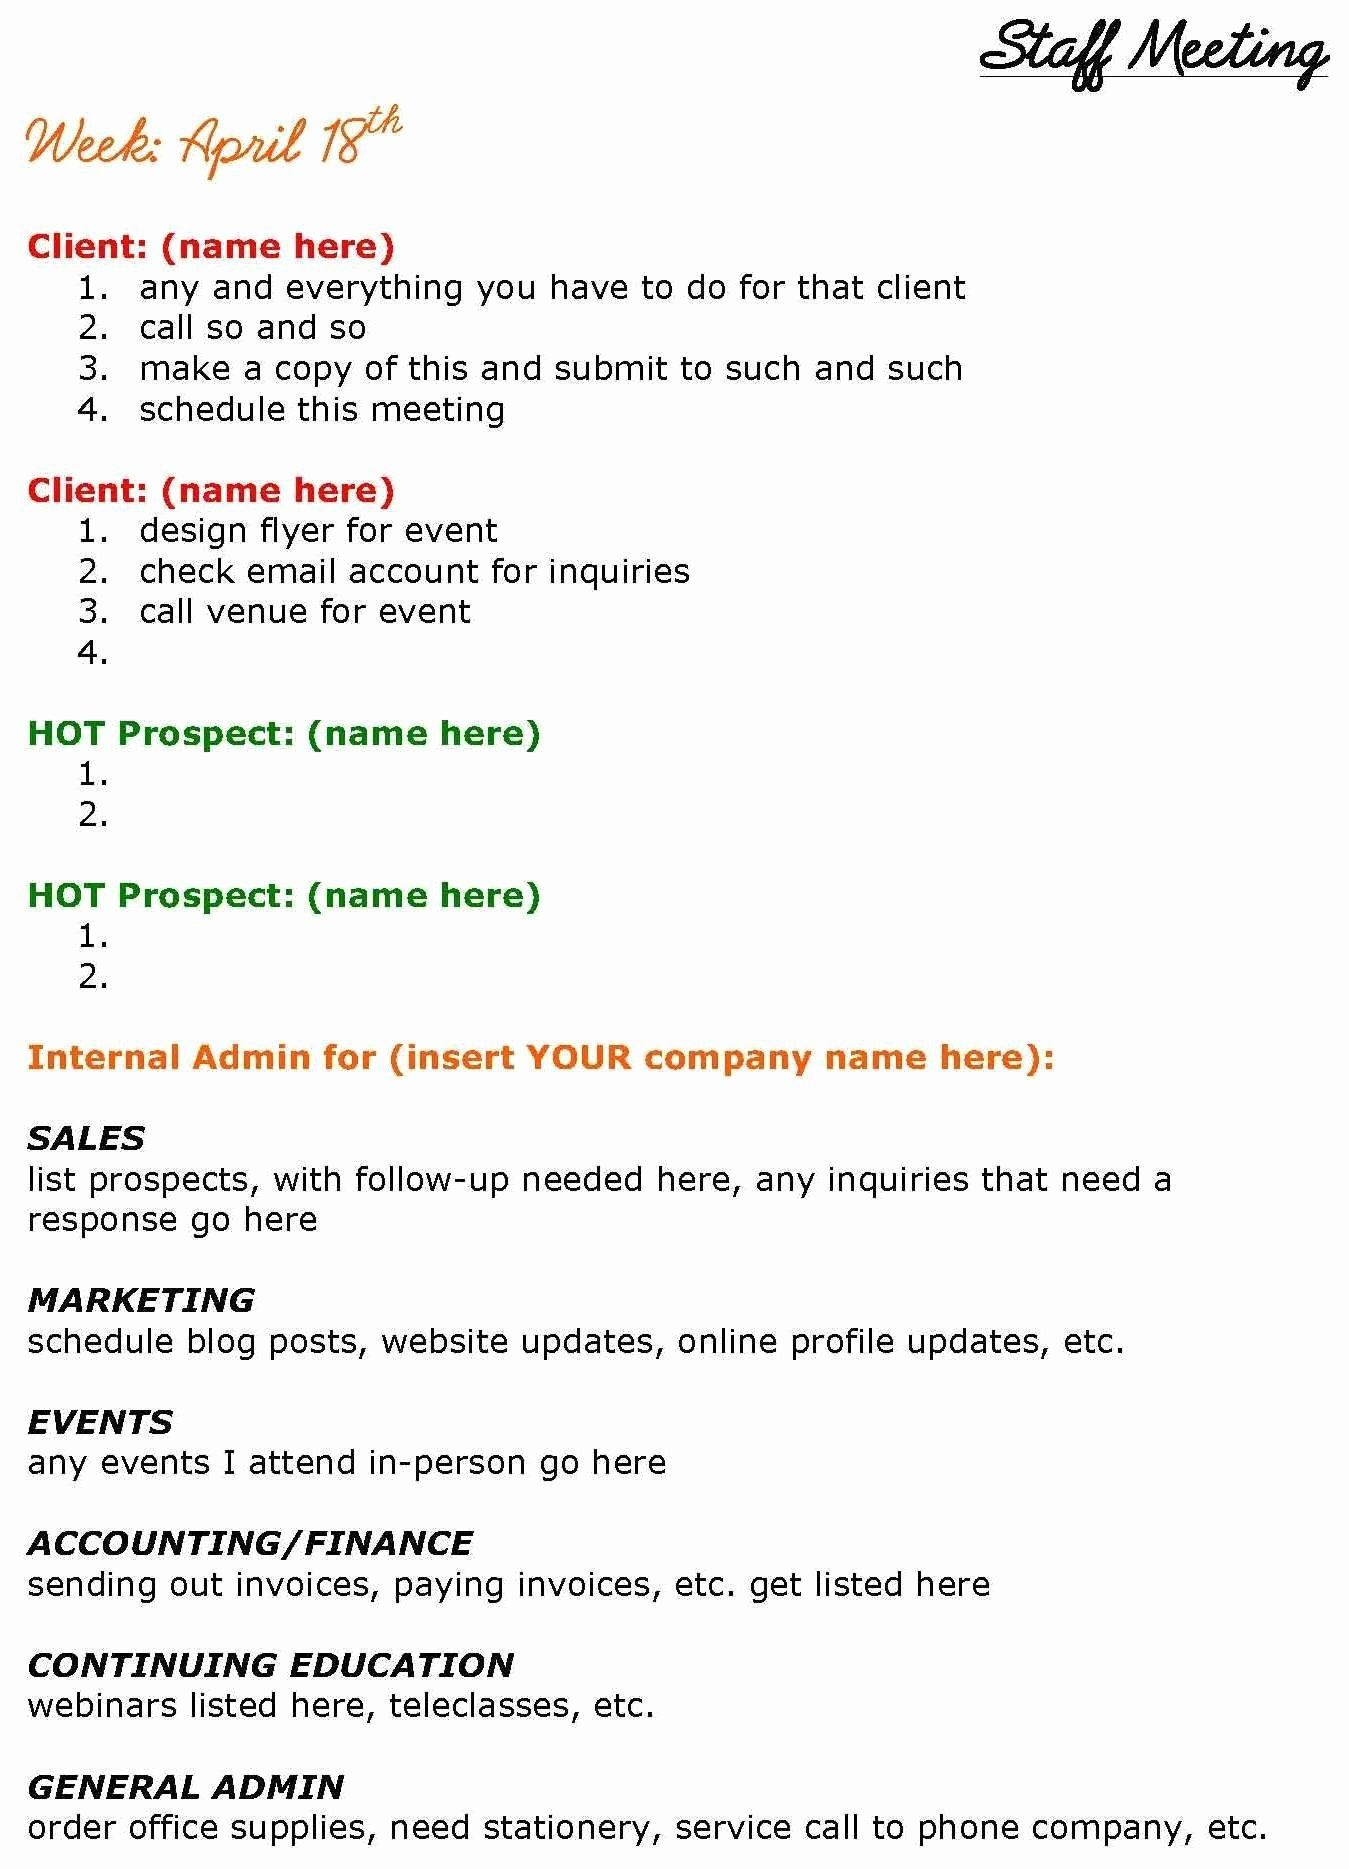 004 Remarkable Staff Meeting Agenda Template Inspiration  Example FormatFull